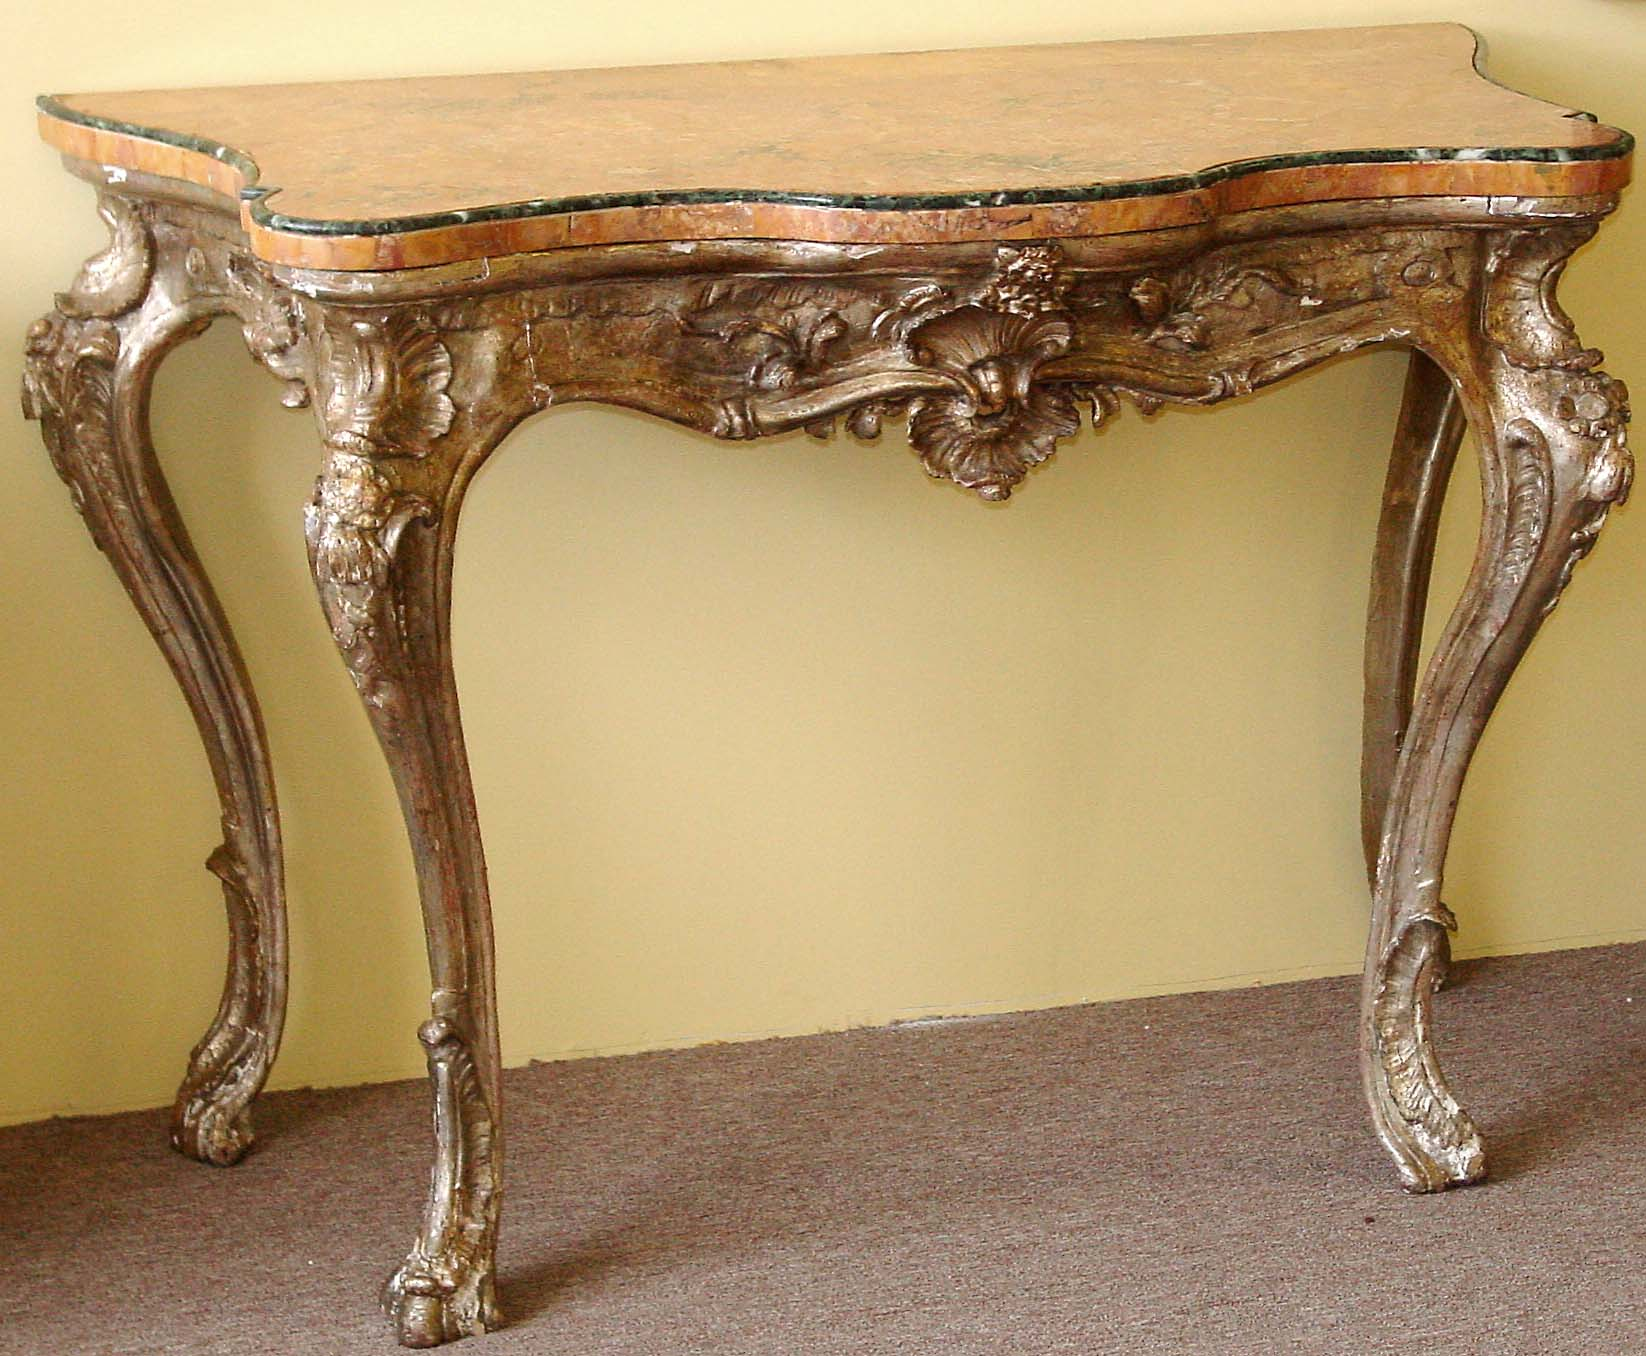 Northern Italian Rococo Period Silver Leaf Console Table